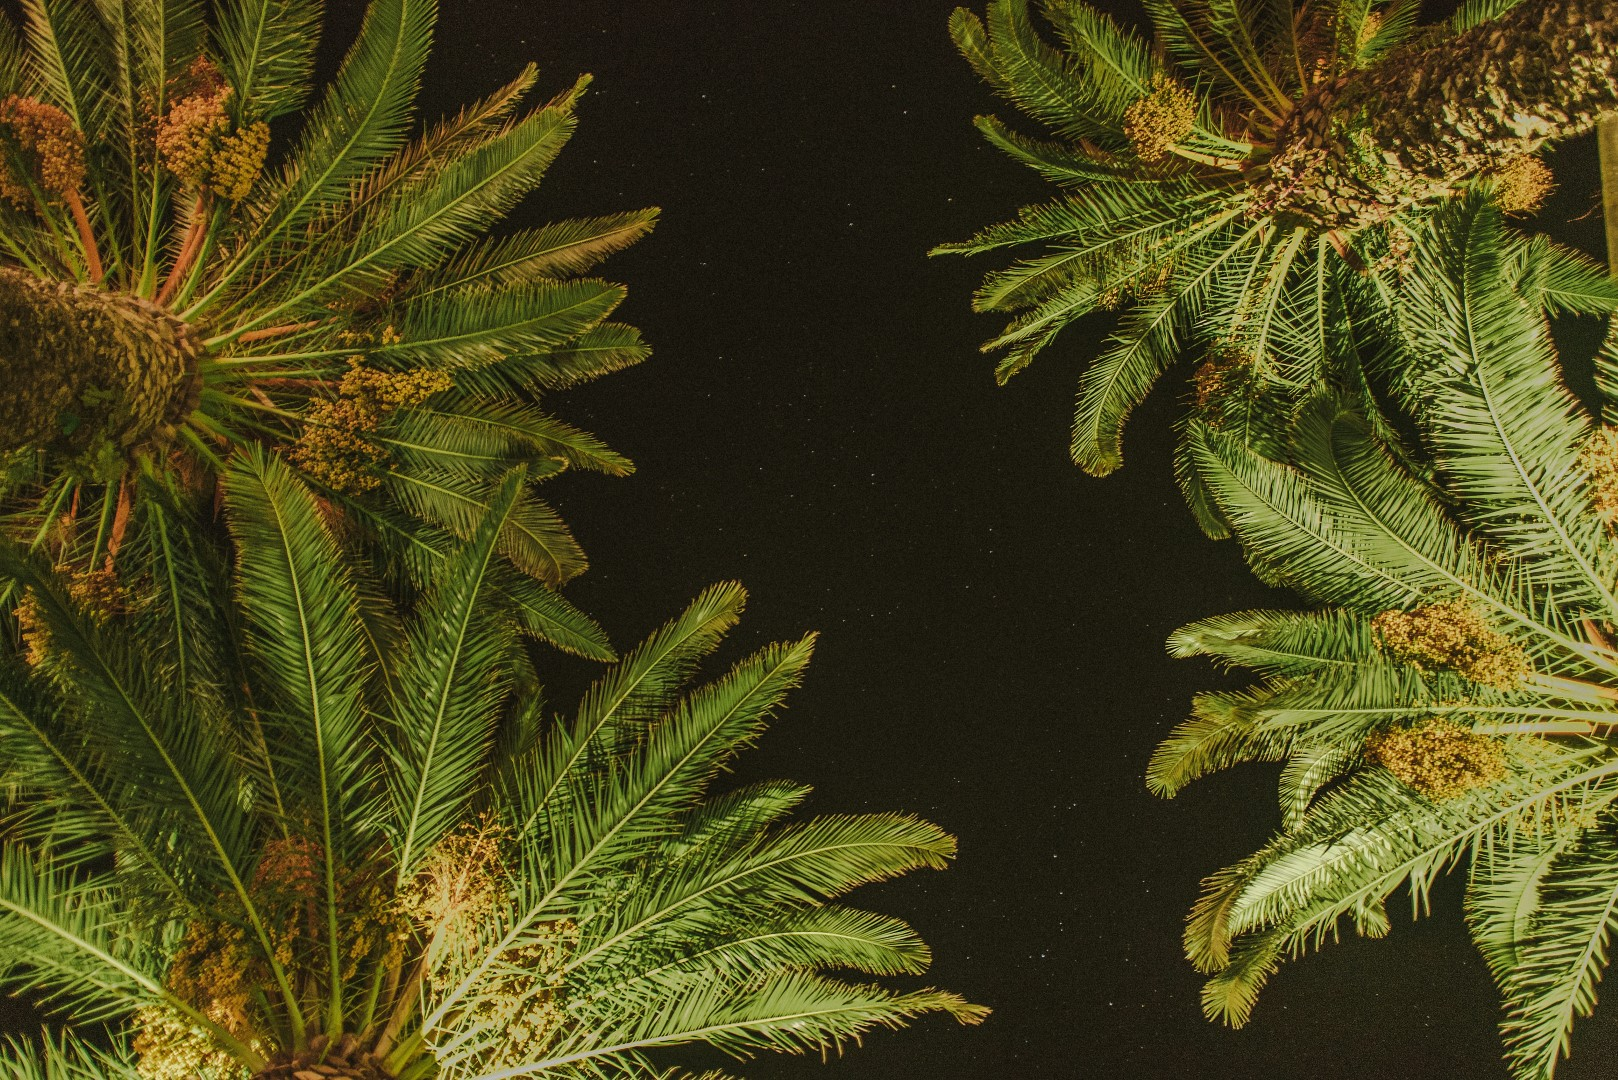 A simple night photo by Marko Marinkovic, there are edges of palms trees and a starry sky.